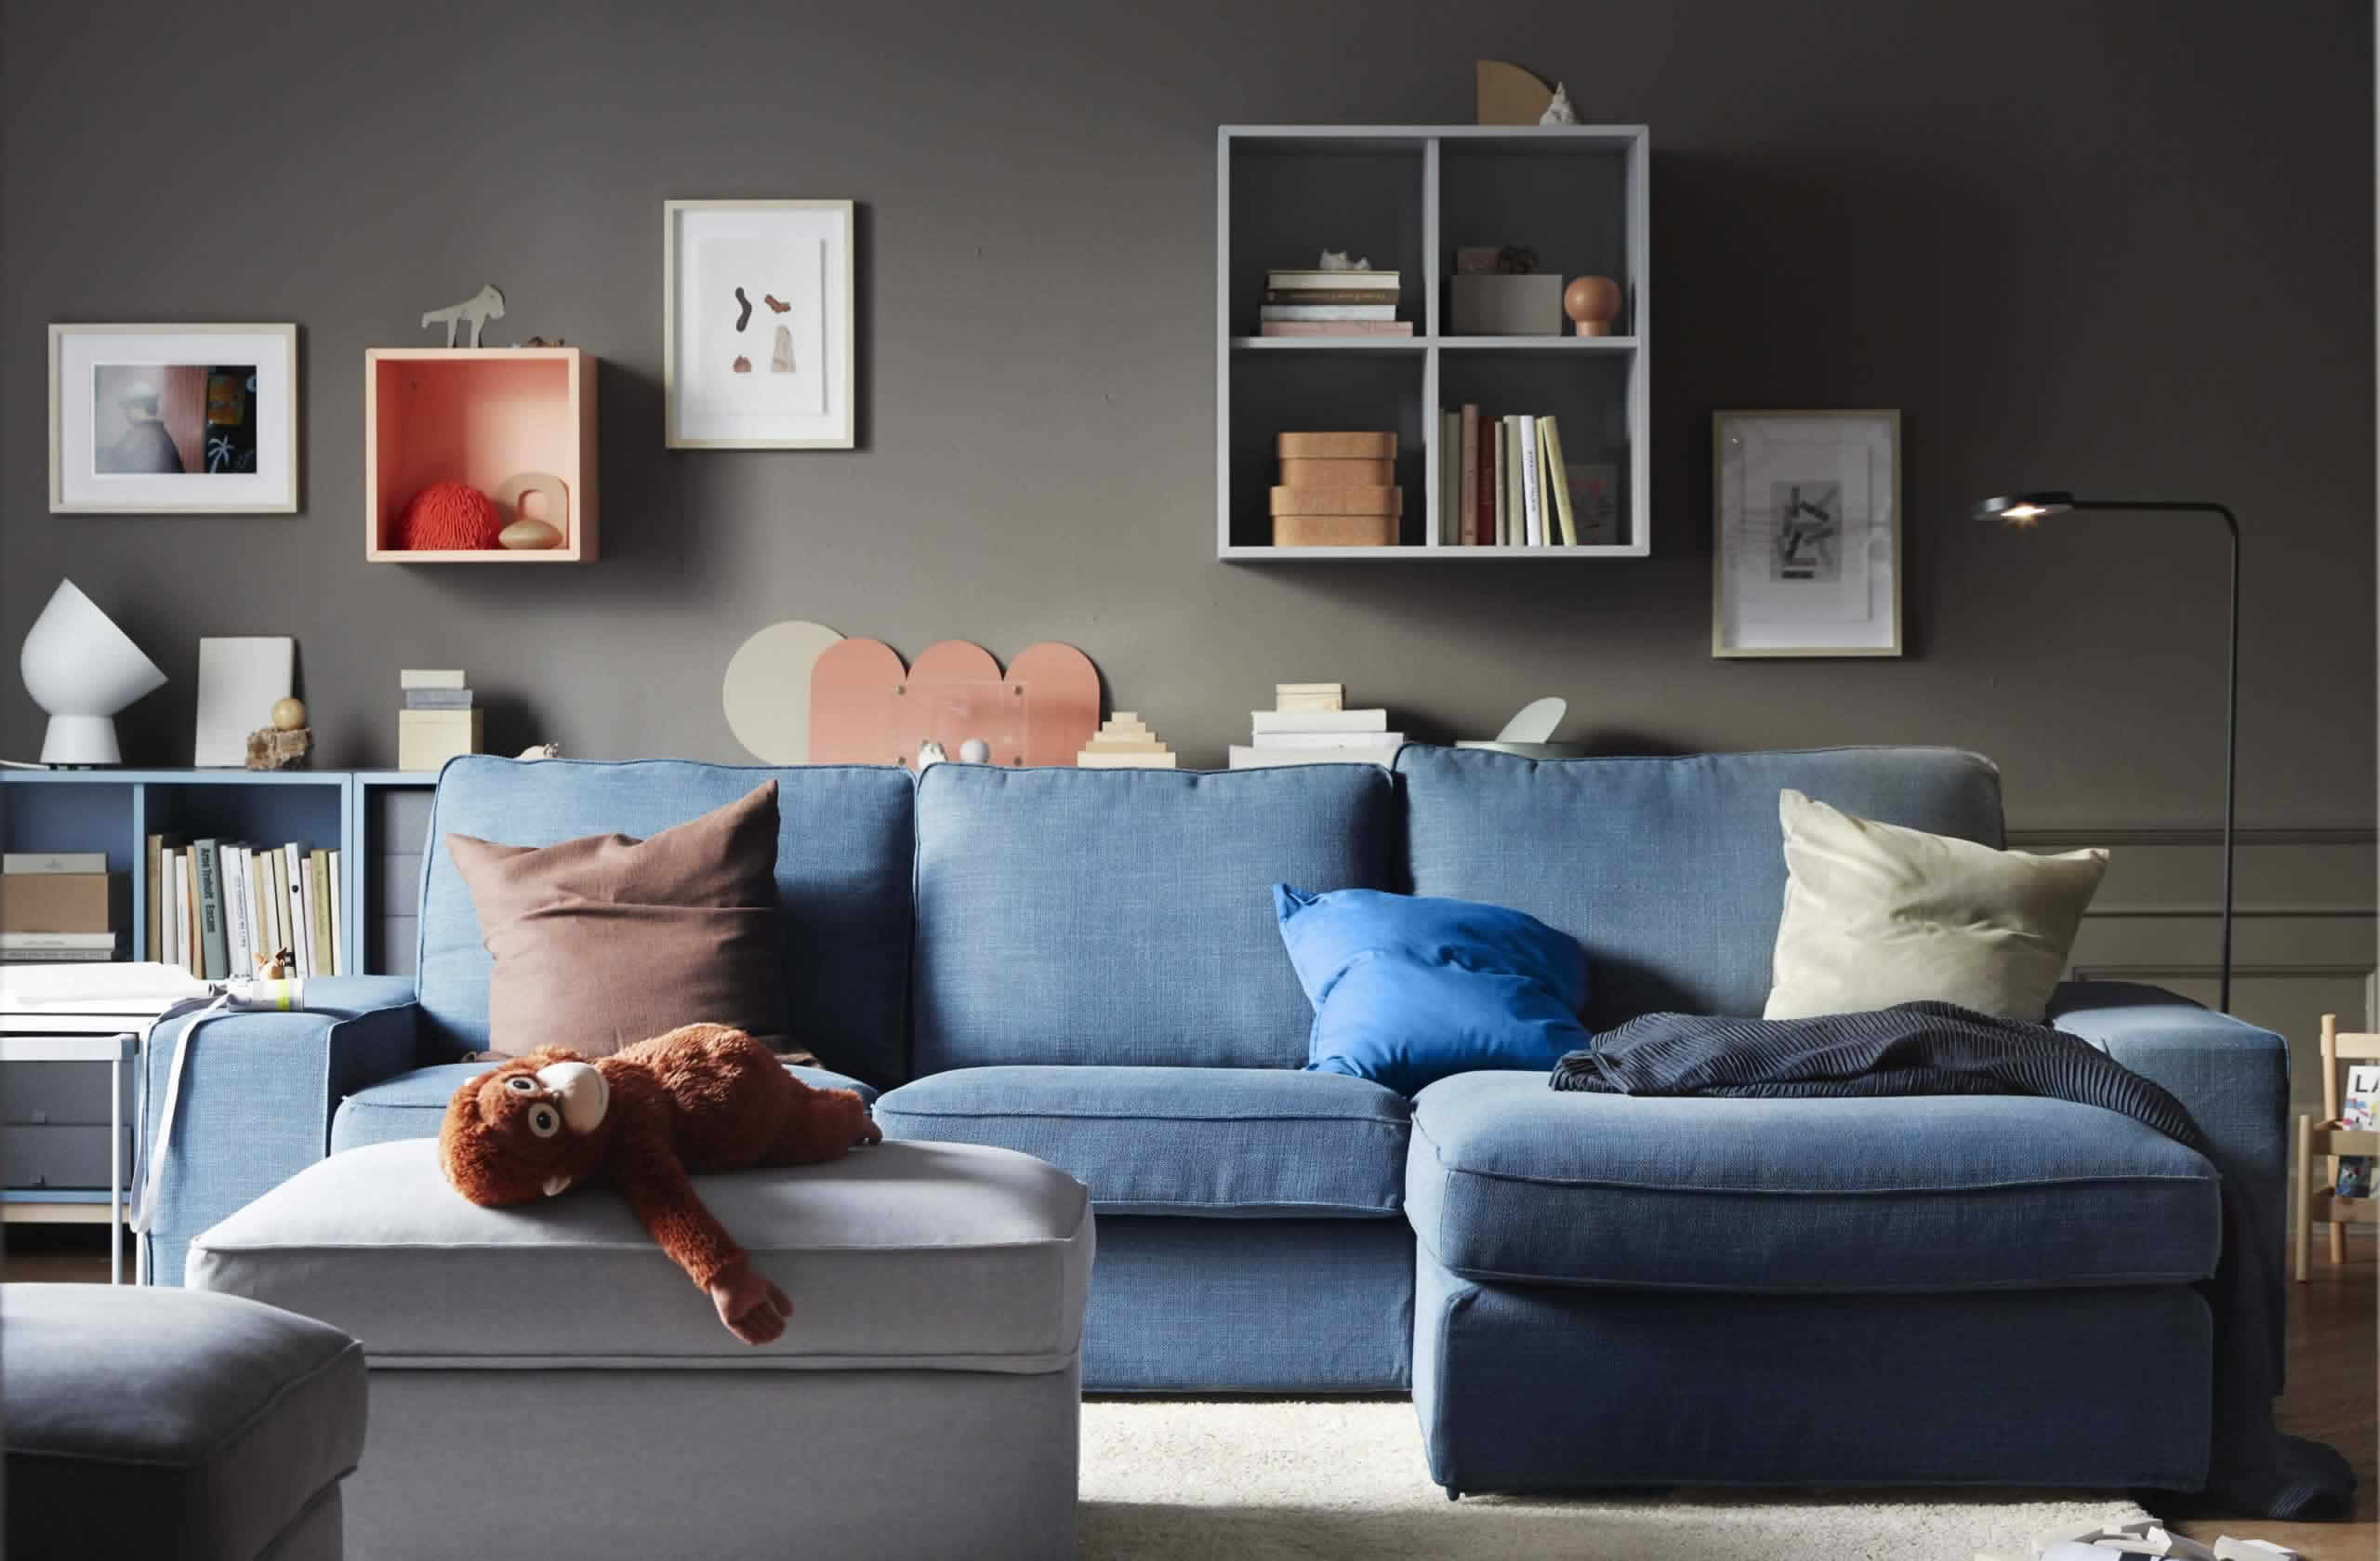 IKEA Ideas - A comfortable family room that works for everyone!